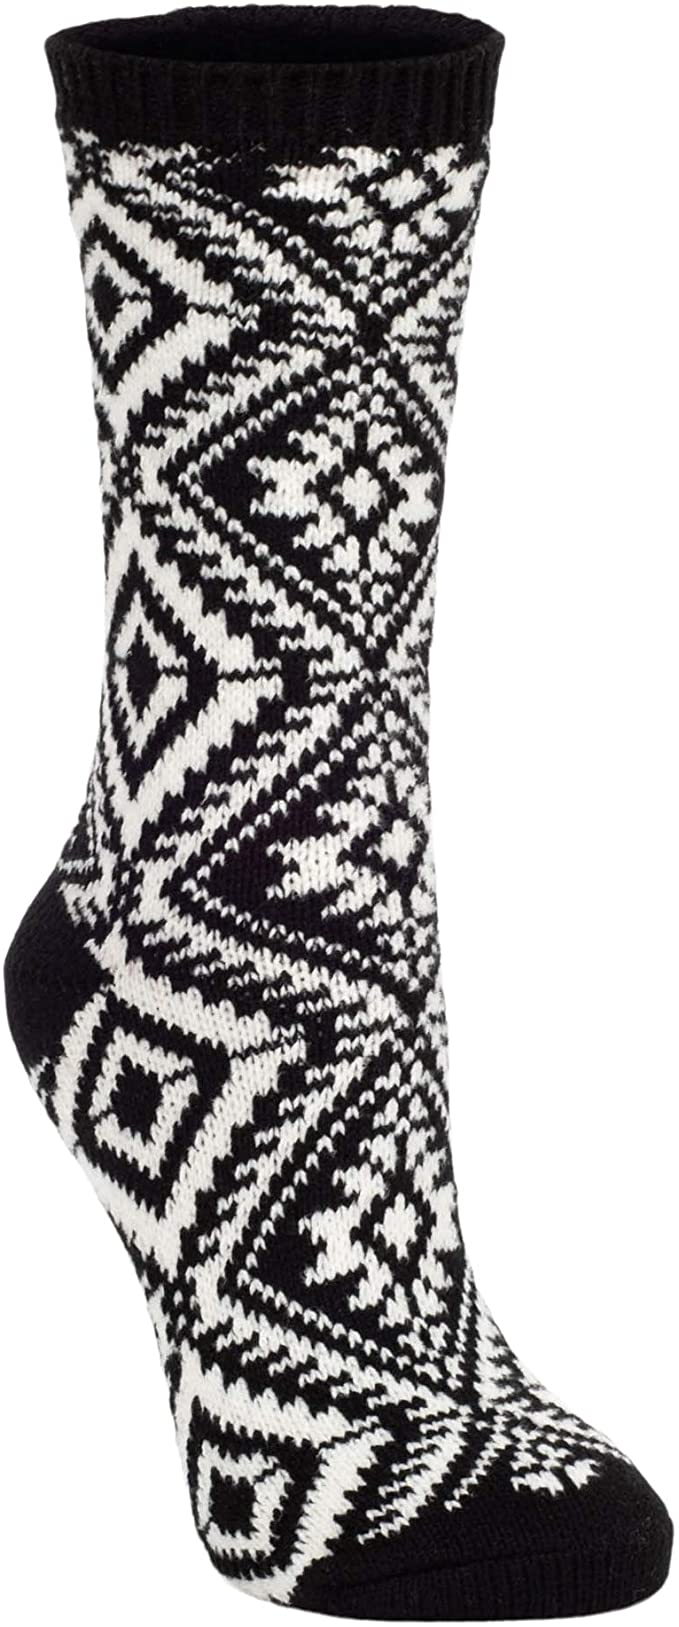 World's Softest - Black Crew Socks | Women's - Knock Your Socks Off